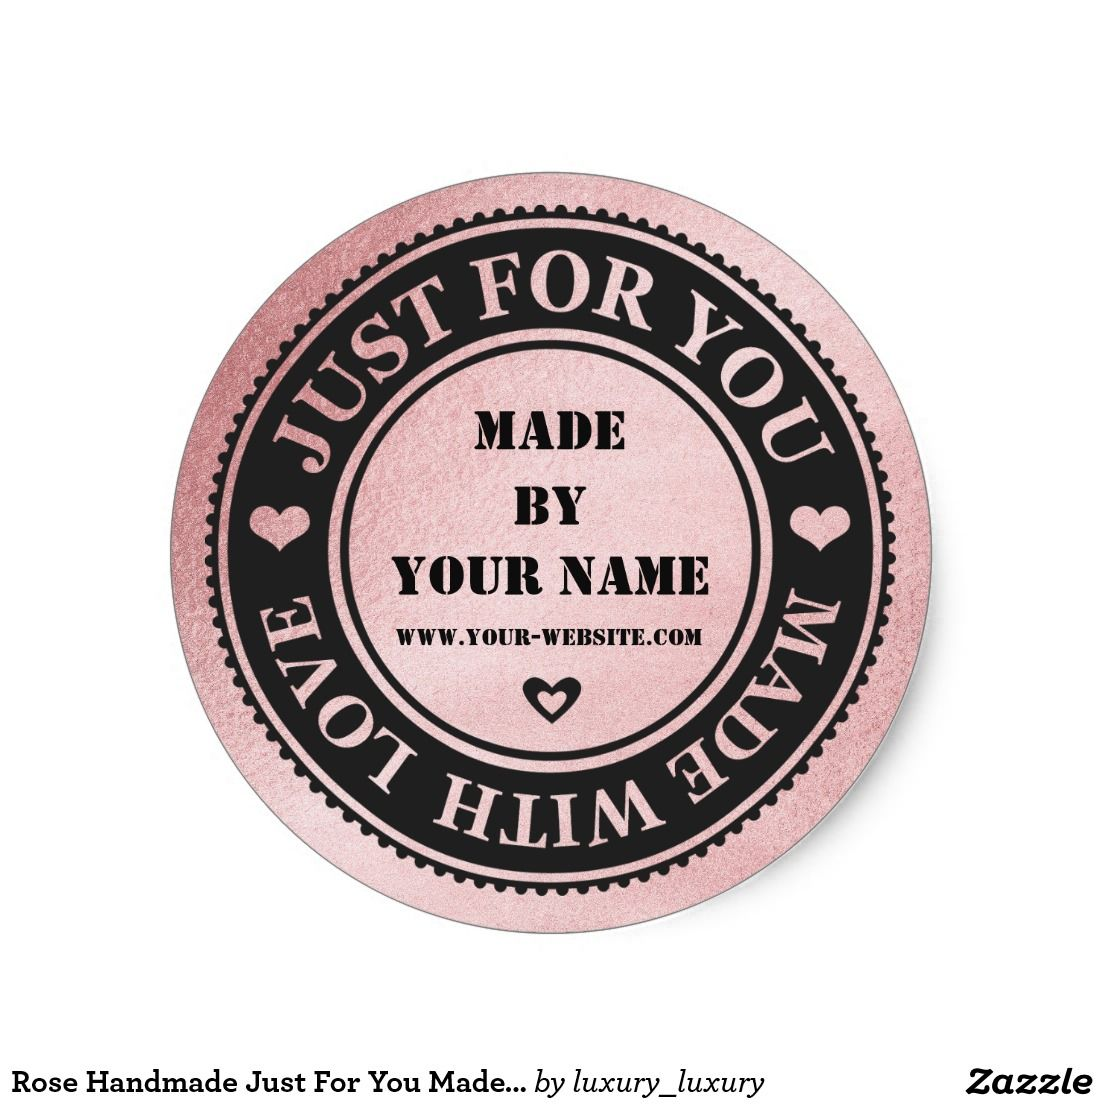 Rose Handmade Just For You Made With Love Round Sticker